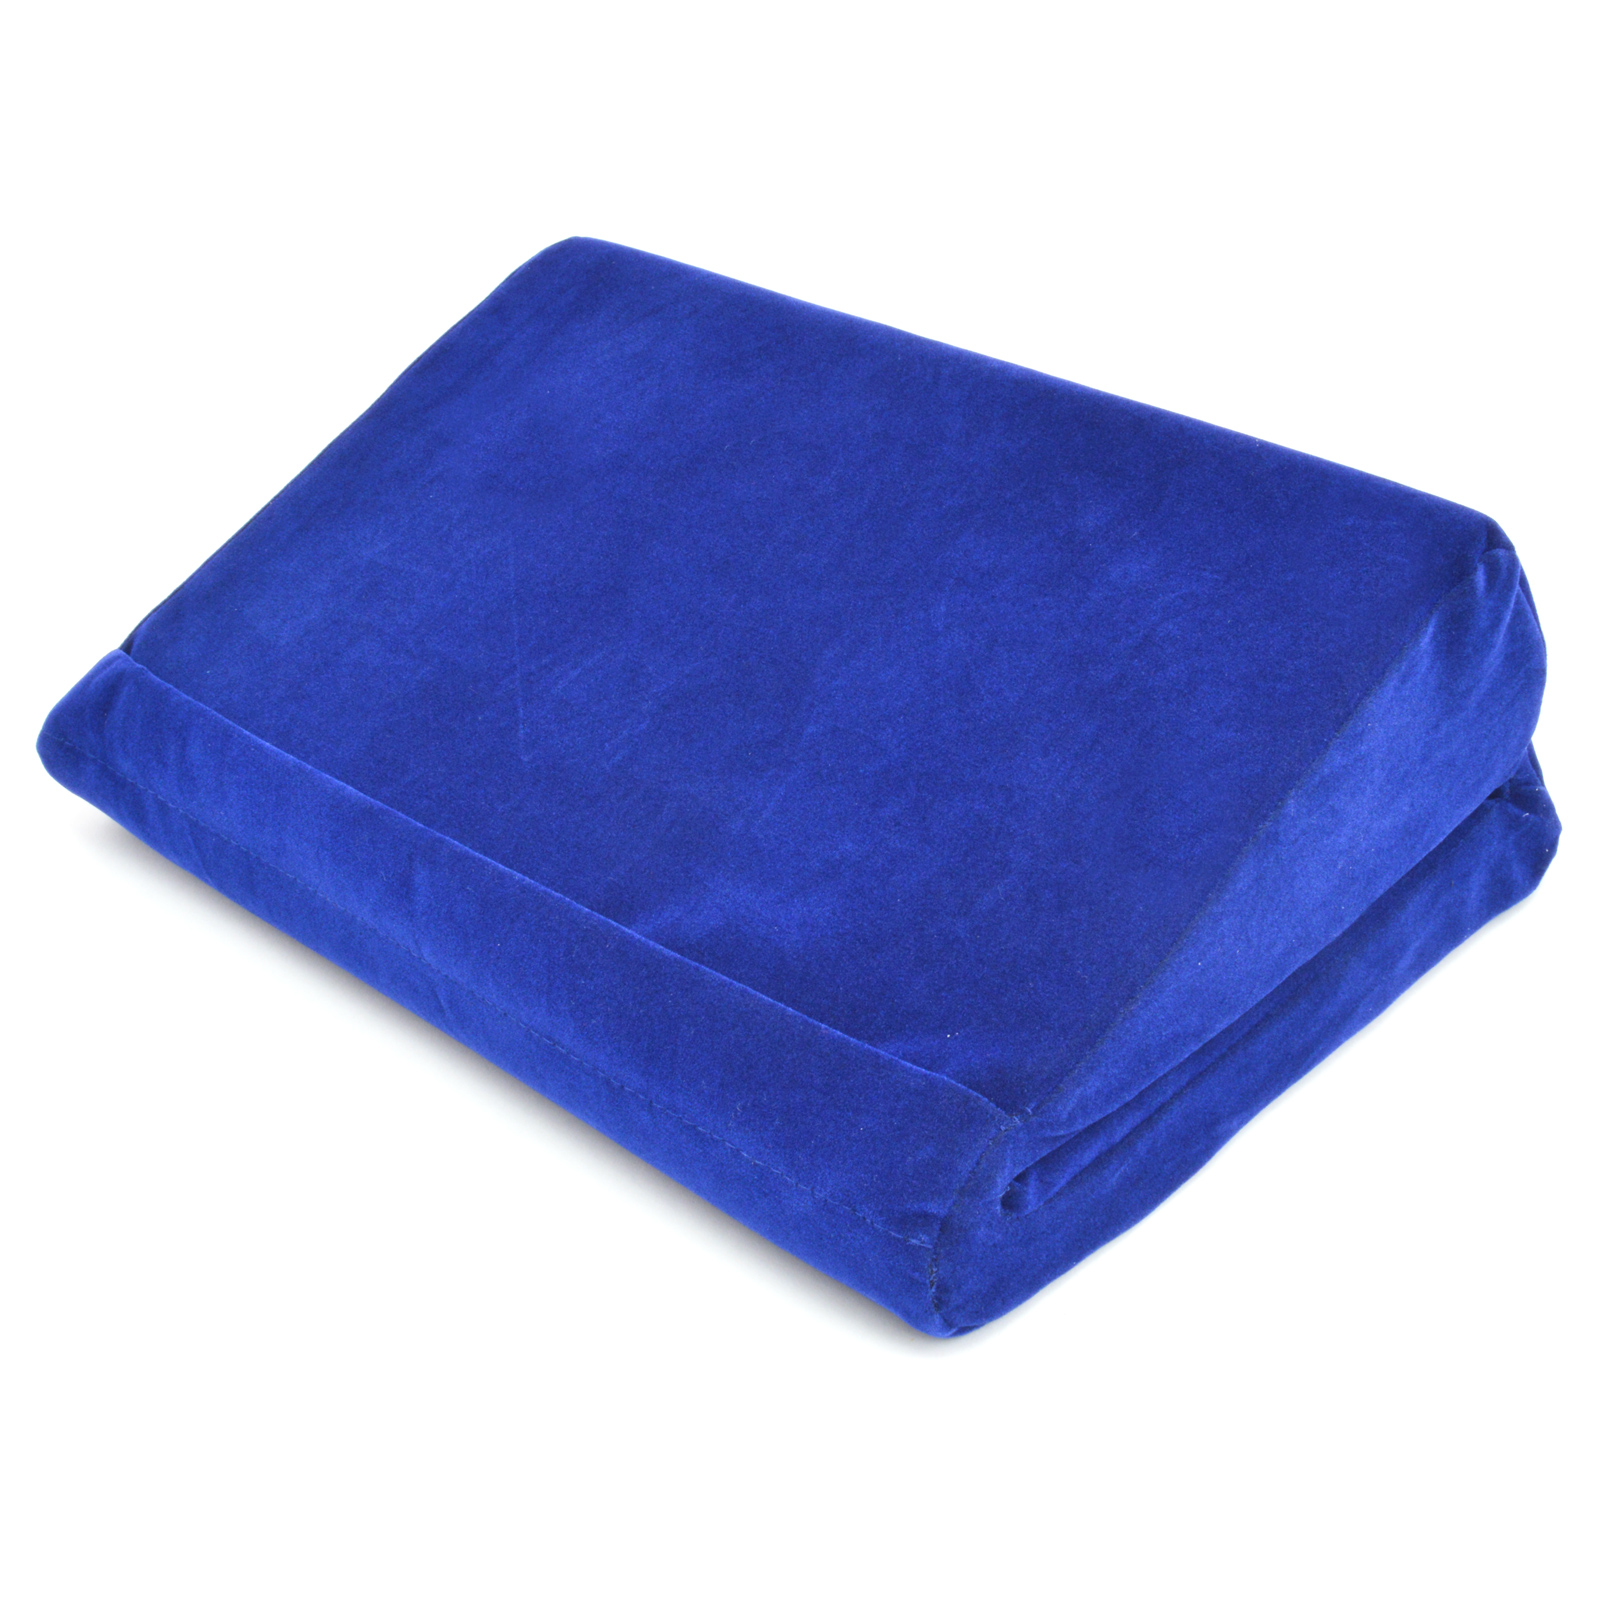 Image of: Blue Tablet Pillow